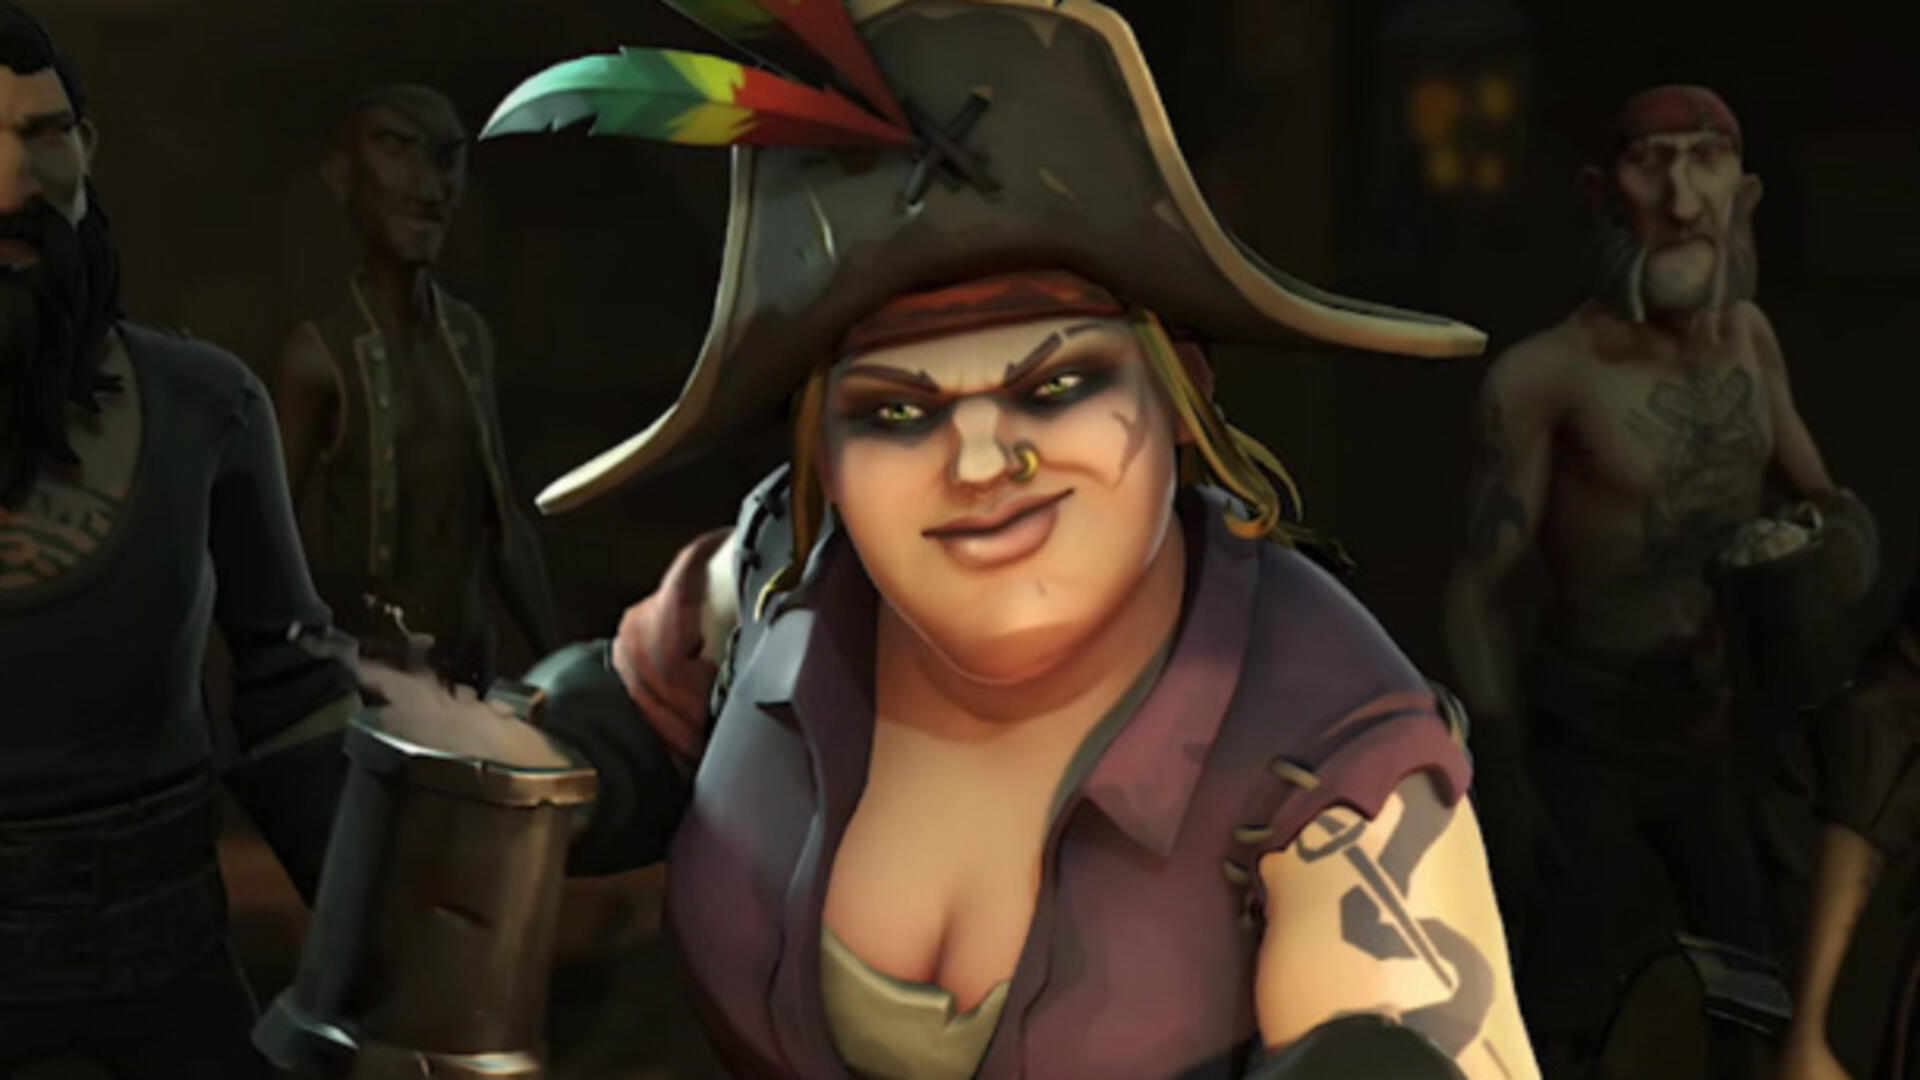 Sea of Thieves' Lowest Settings Let the Game Run on the